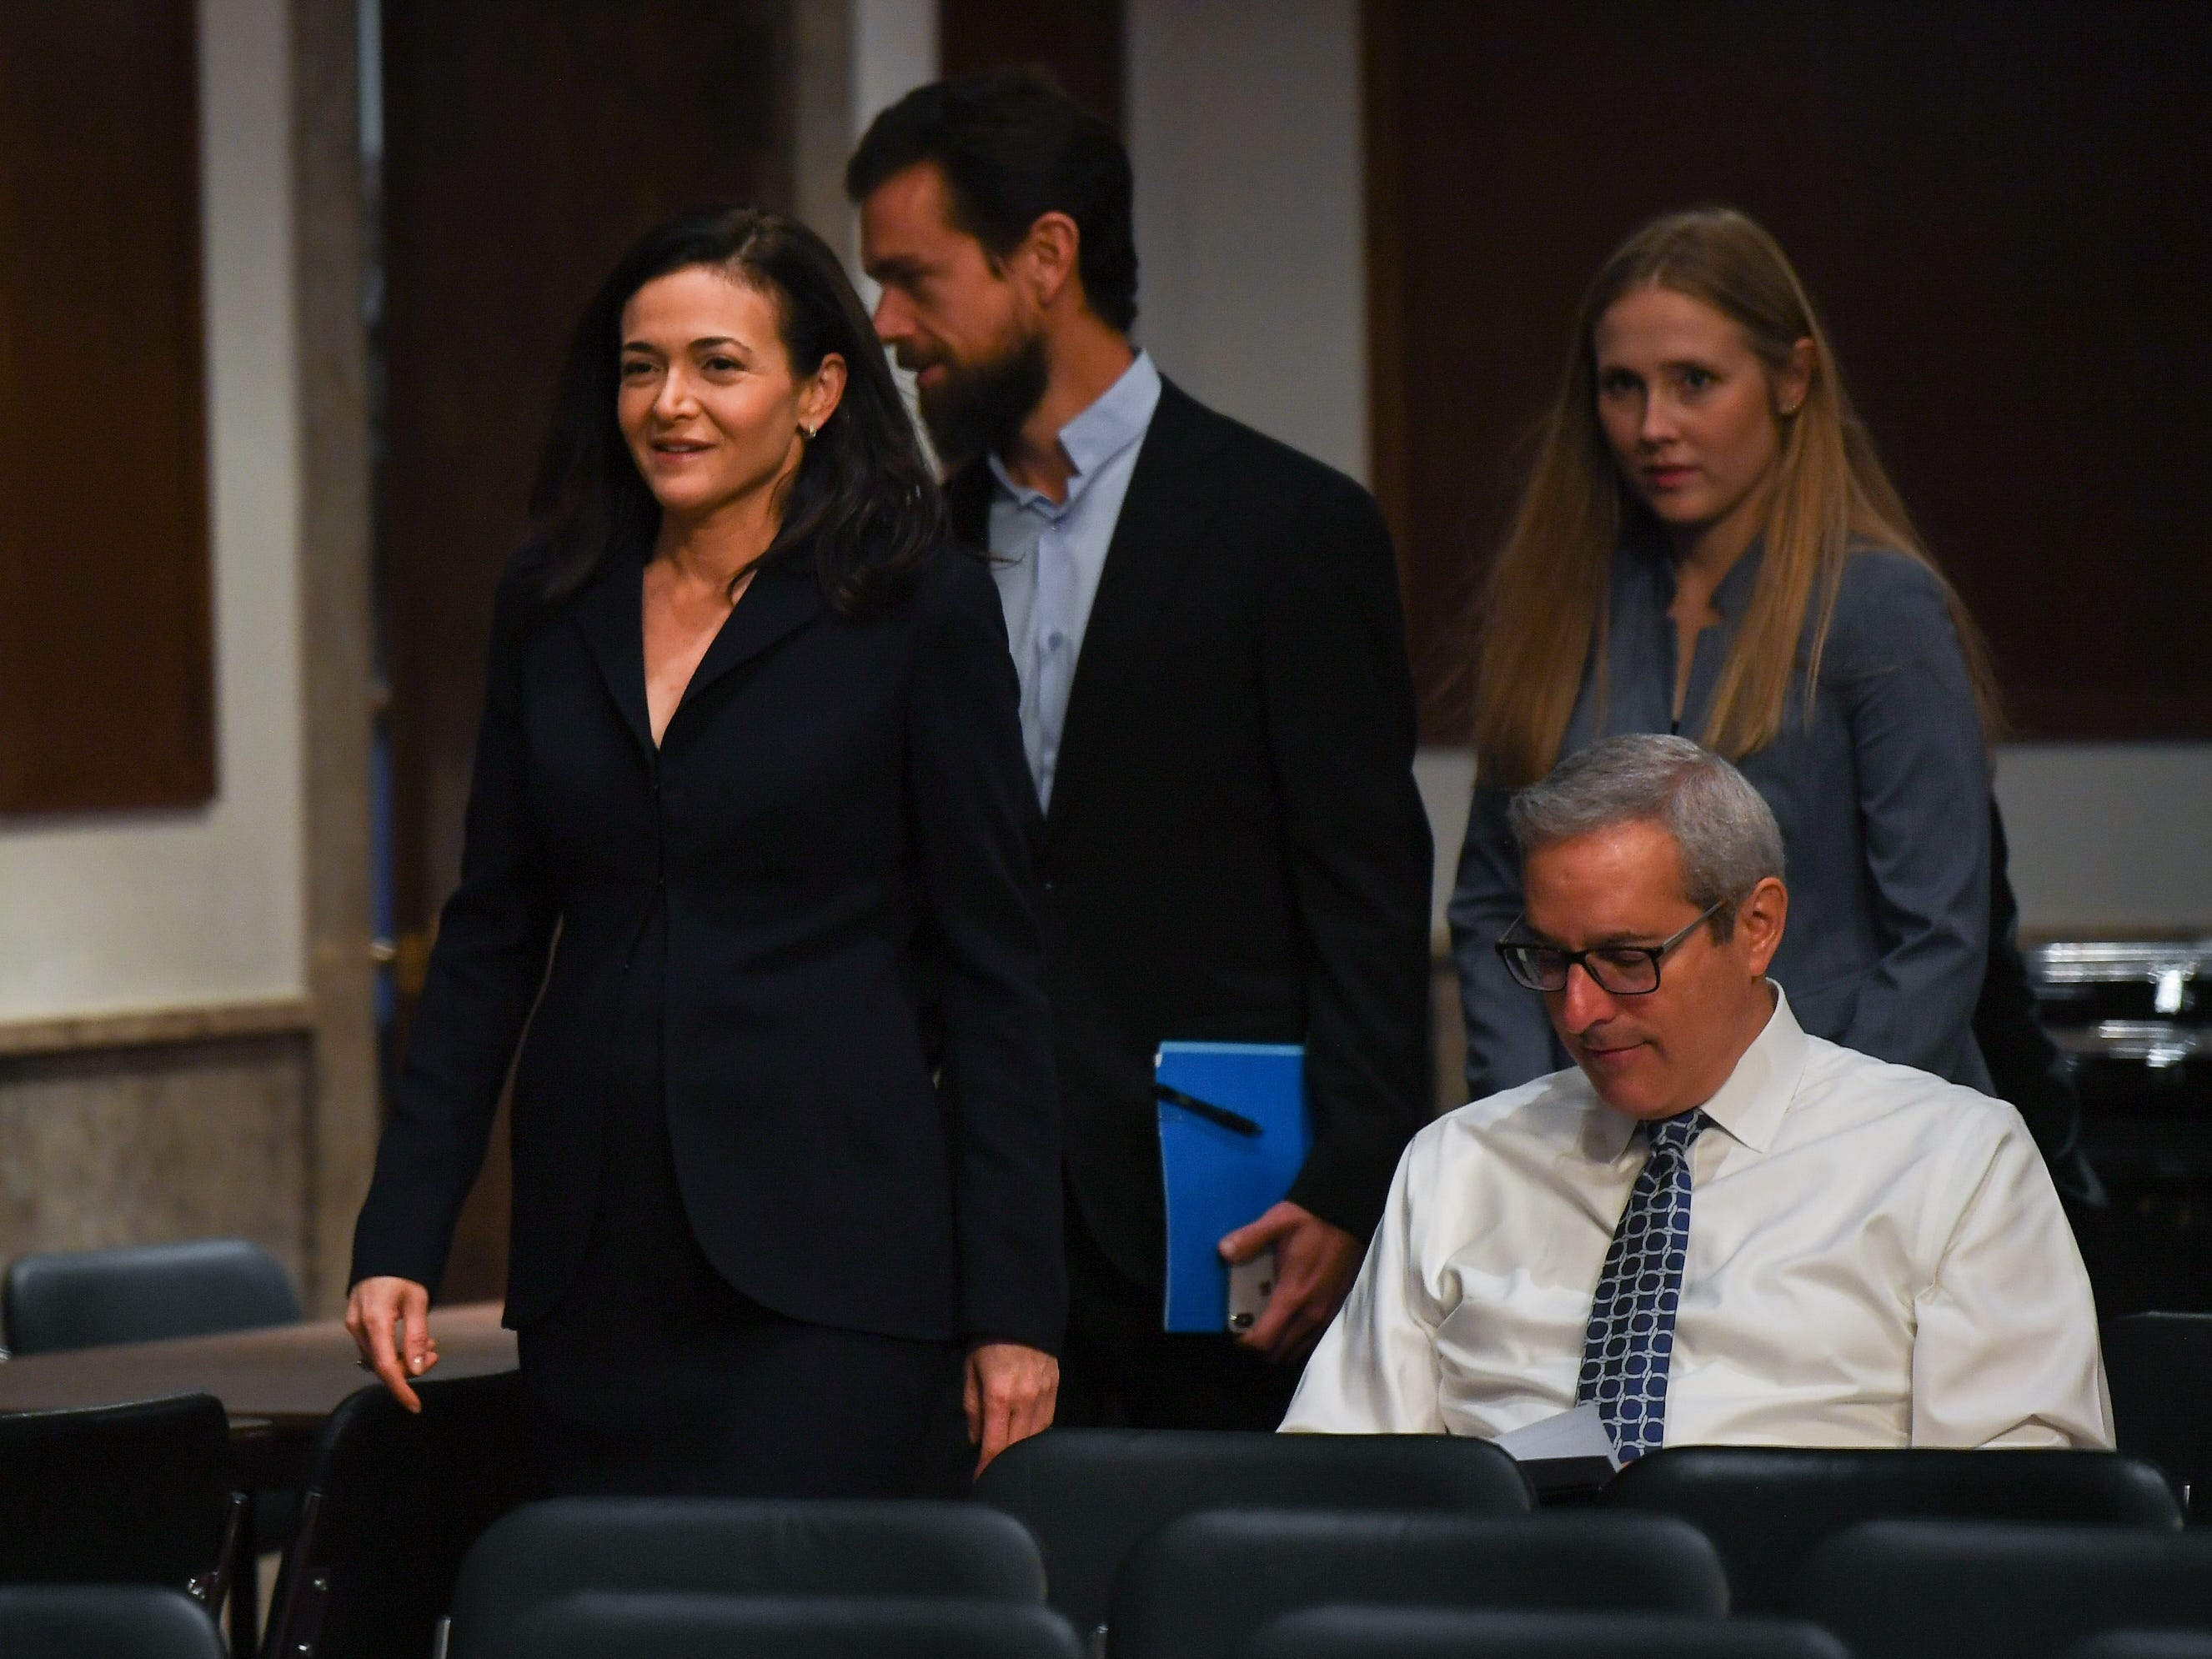 9/5/18 8:41:04 AM -- Washington, DC, U.S.A  -- Sheryl Sandberg, chief operating officer of Facebook Inc., left, and Jack Dorsey, chief executive officer of Twitter Inc., center, arrive to a near empty room to testify before the Senate Select Committee on Intelligence during a hearing on Foreign Influence Operations' Use of Social Media Platforms on Sept. 5, 2018 in Washington.  --    Photo by Jack Gruber, USA TODAY Staff ORG XMIT:  JG 137441 Social Media Hea 9/5/ (Via OlyDrop)